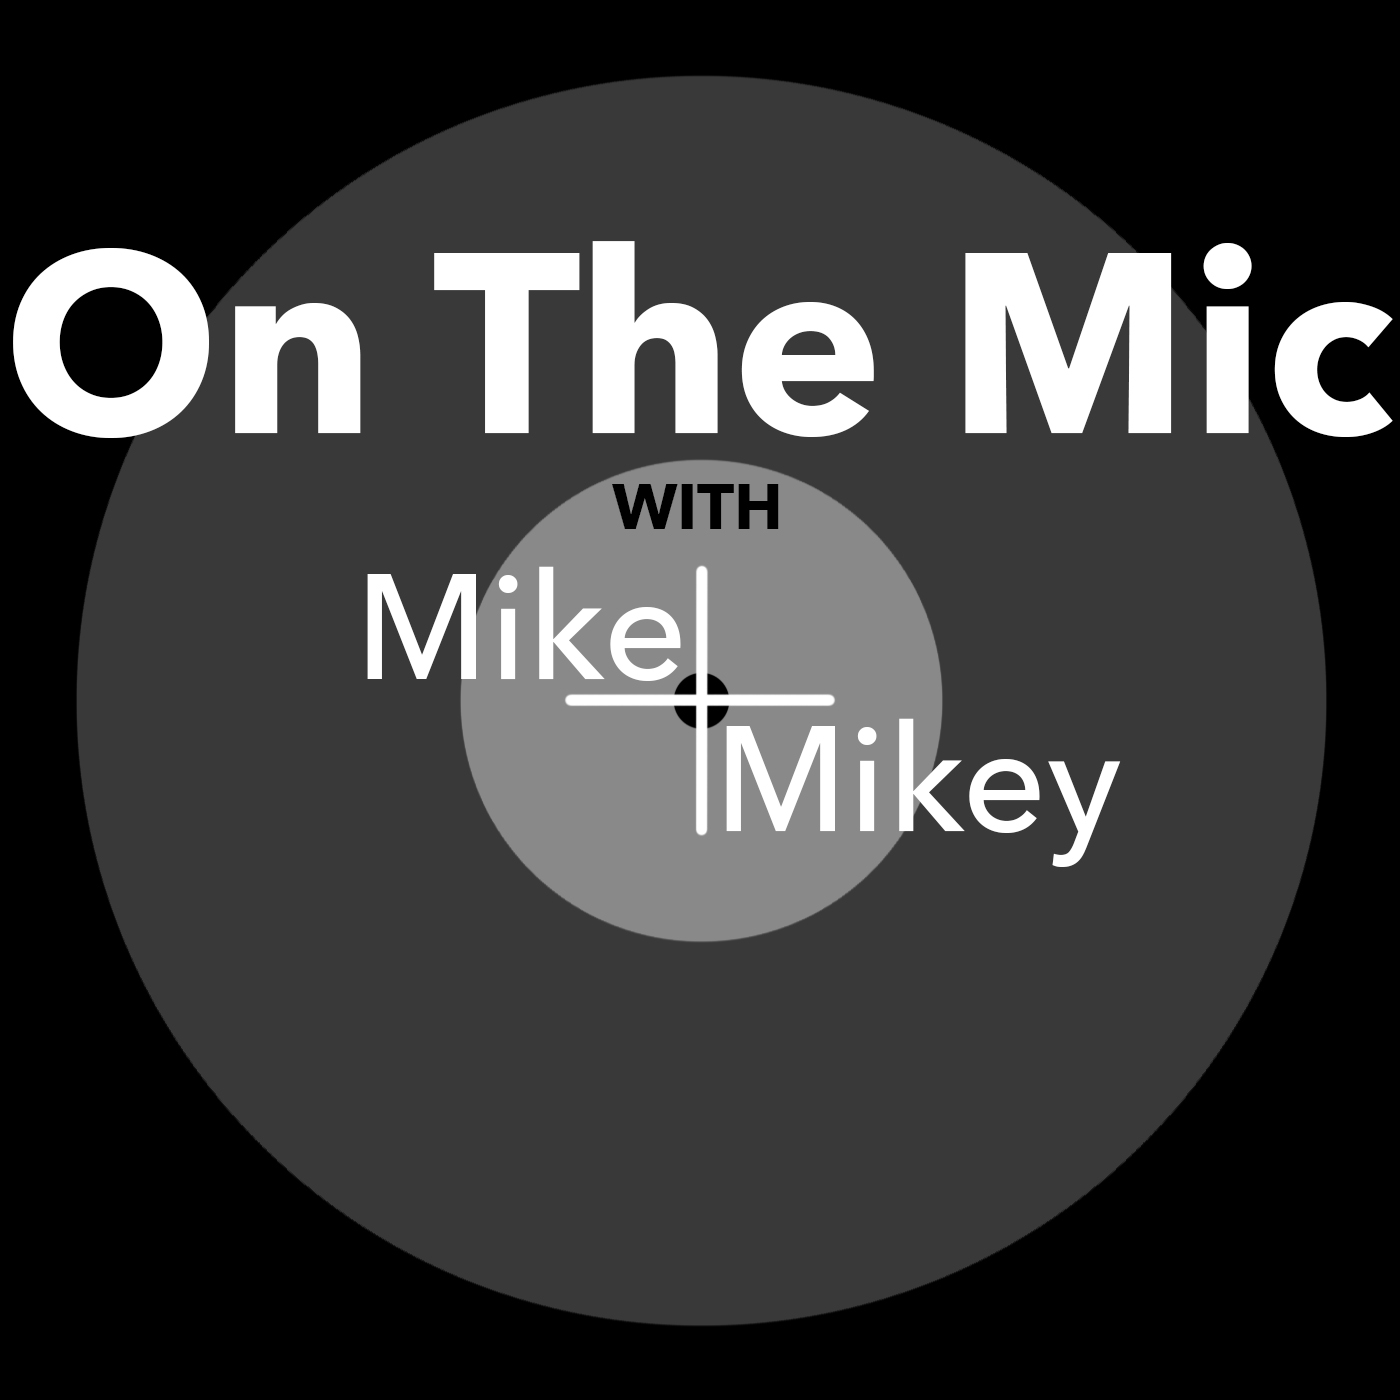 On The Mic with Mike and Mikey - Mike Russell Media